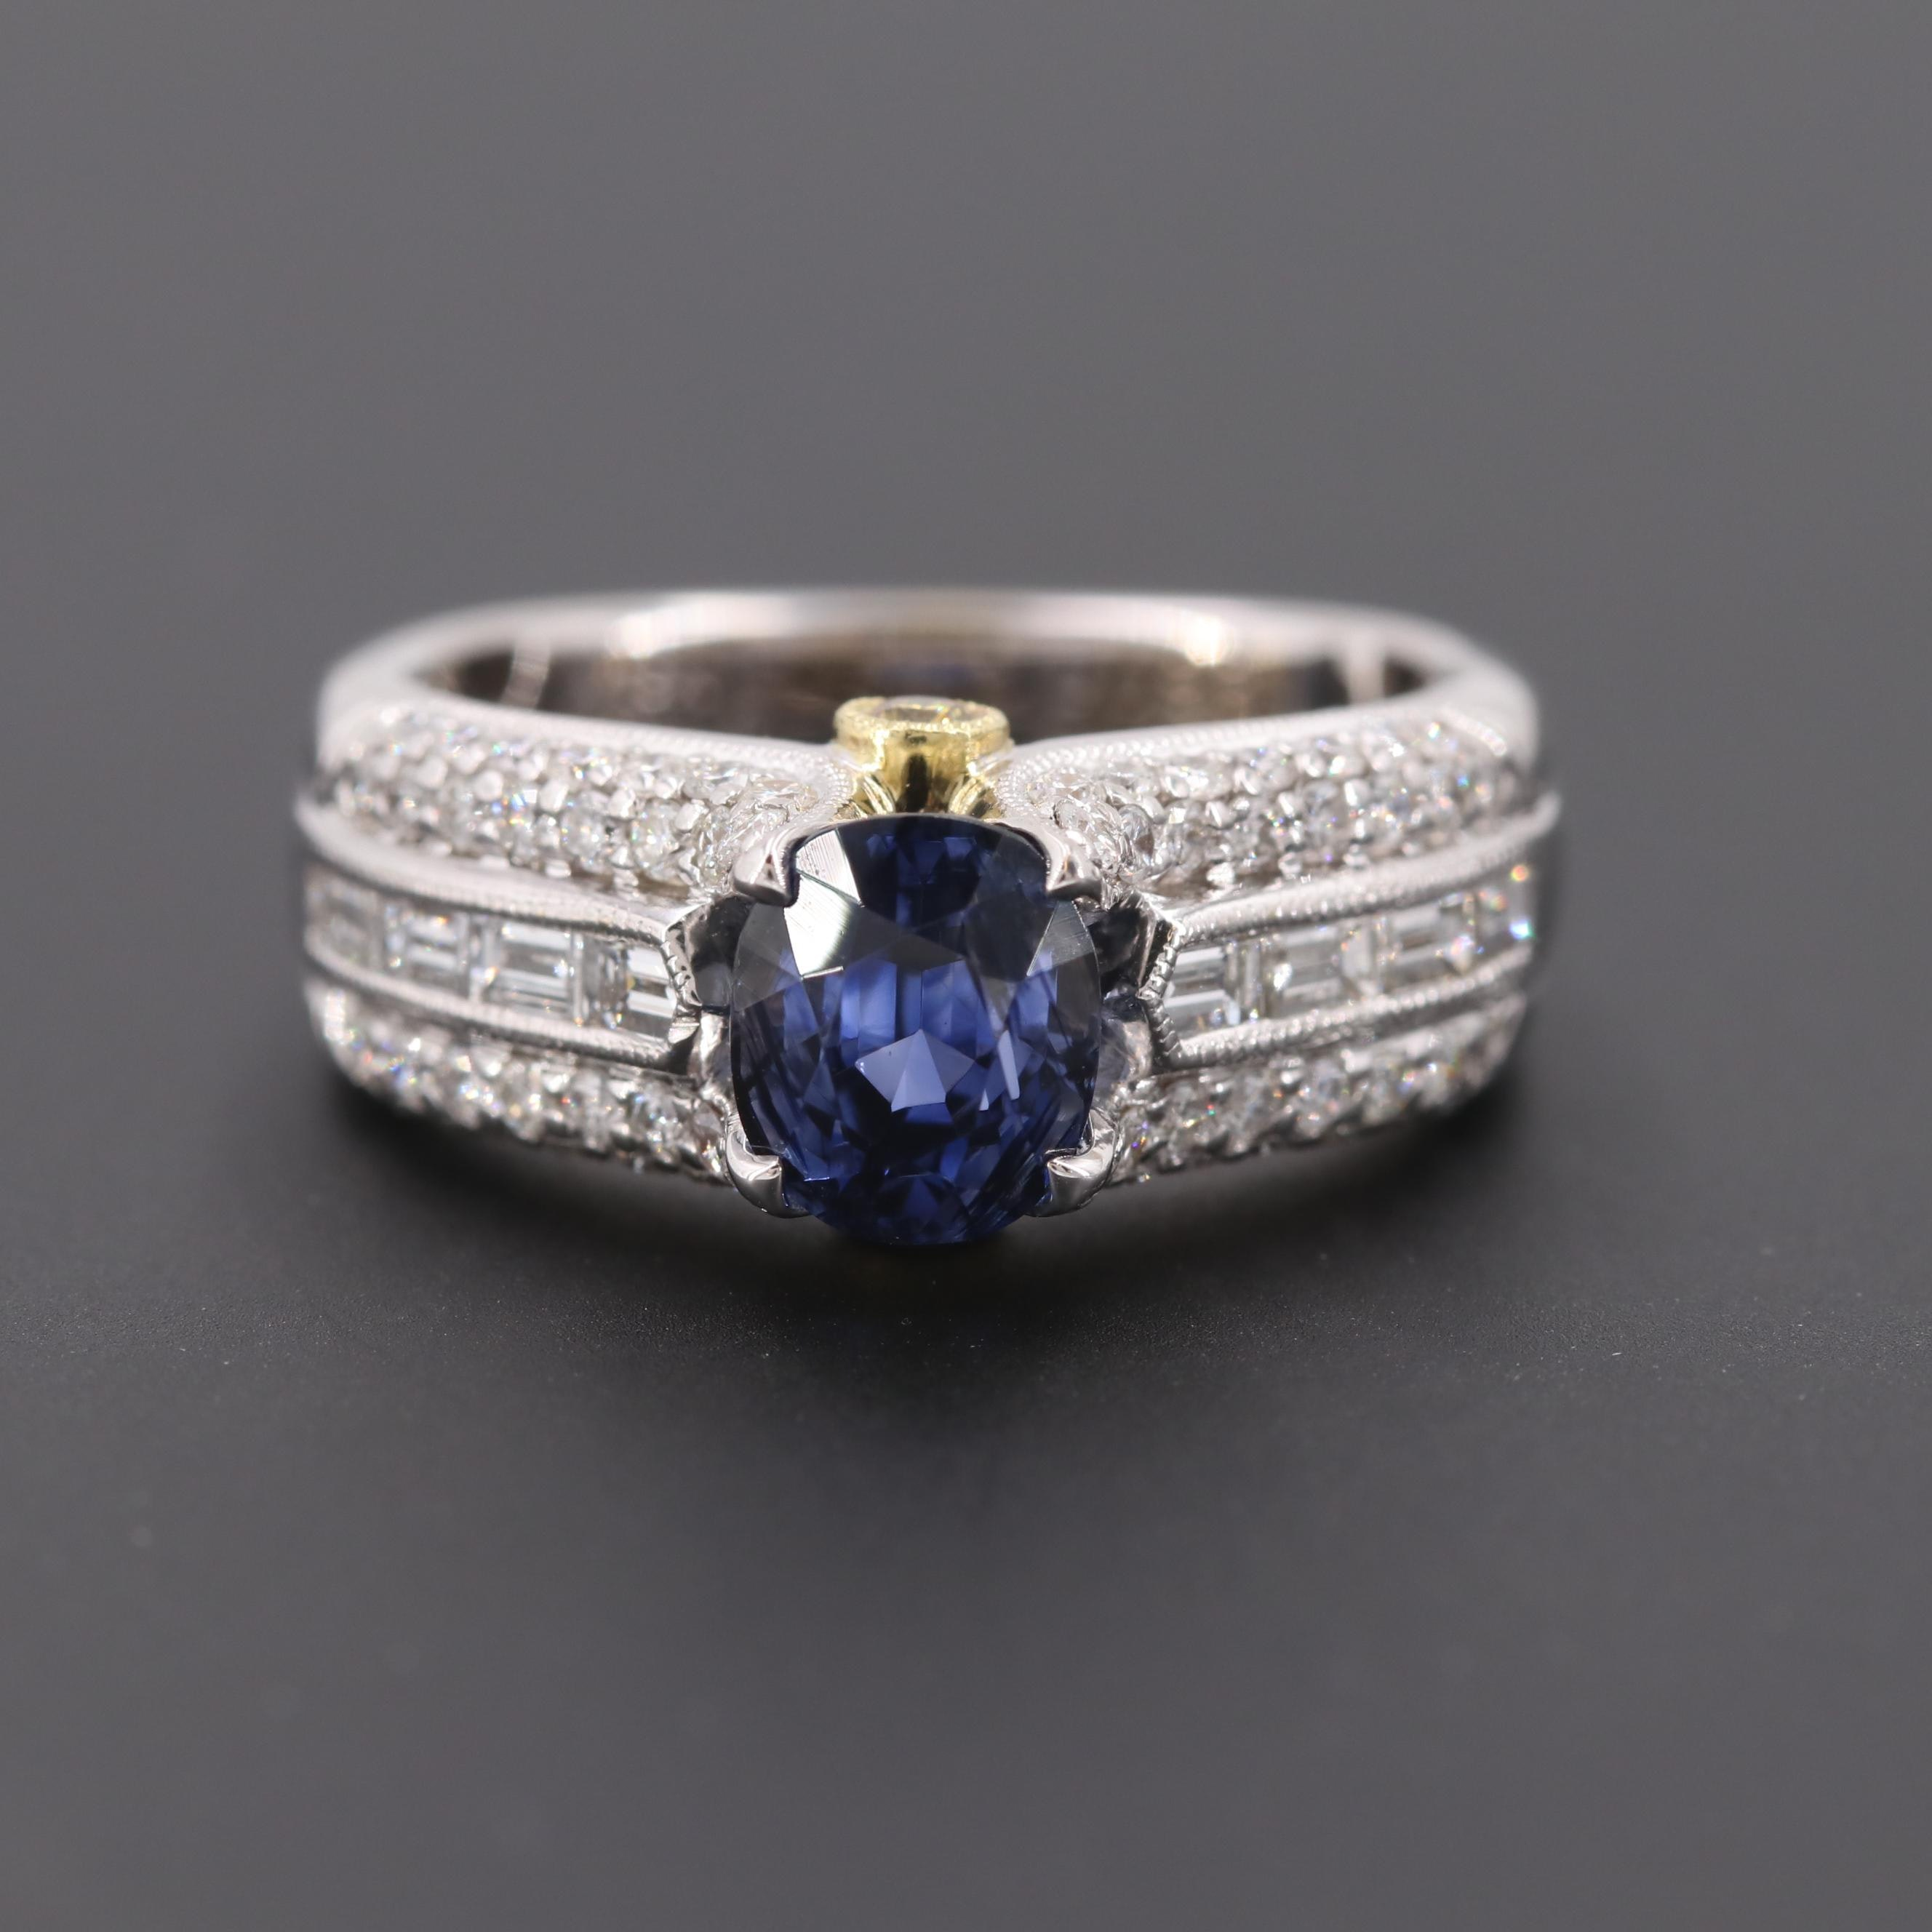 Simon G. 18K White Gold 2.06 CT Unheated Sapphire and 1.42 CTW Diamond Ring GIA